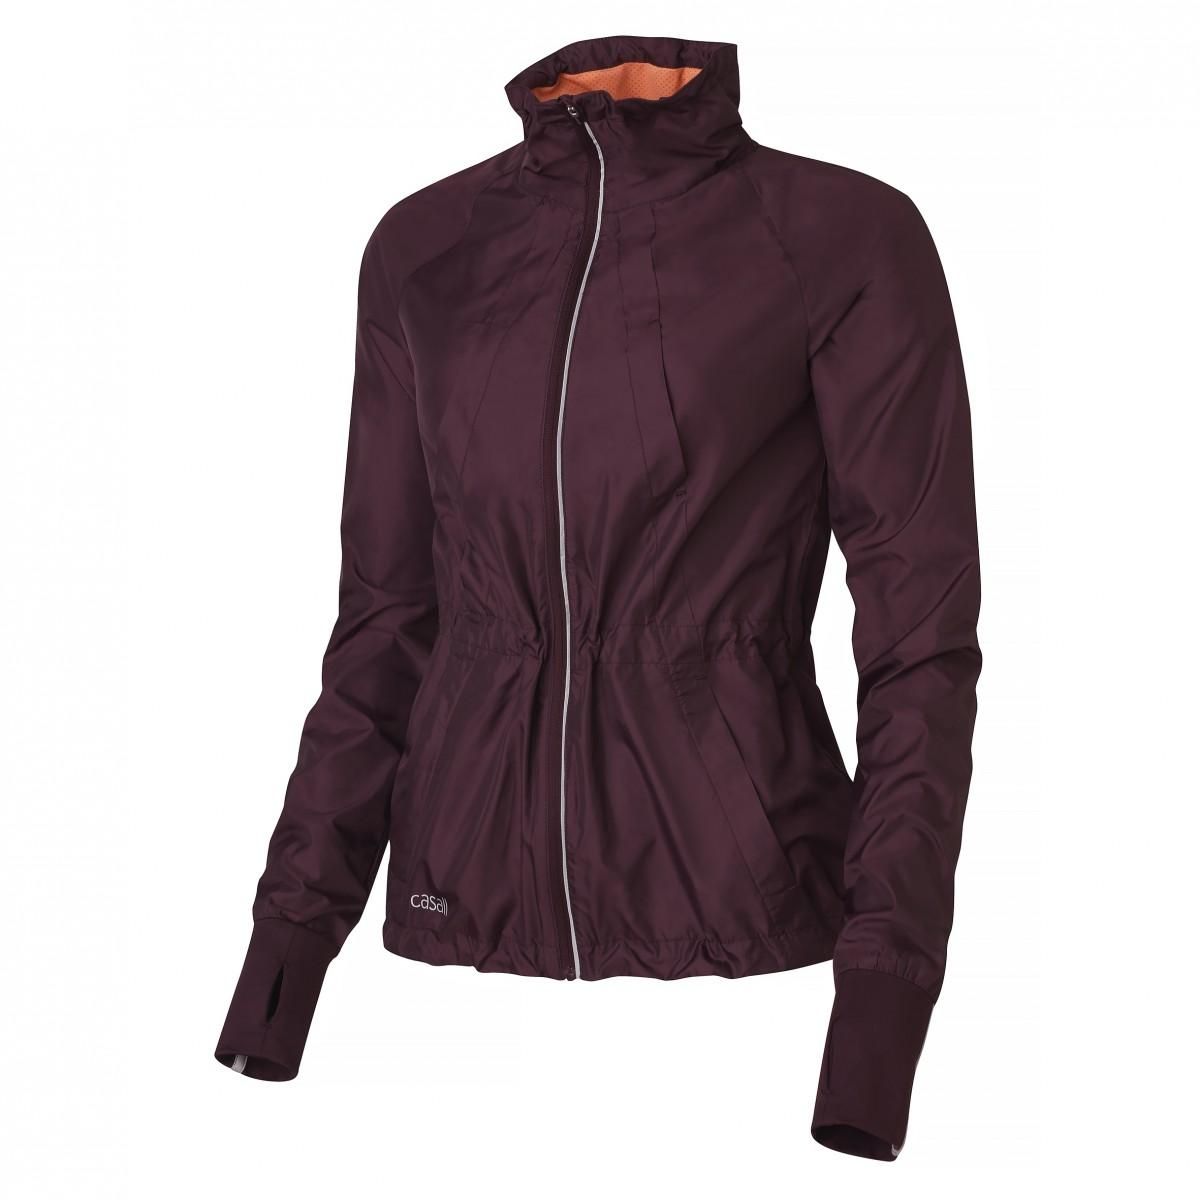 Casall District Wind Jacket